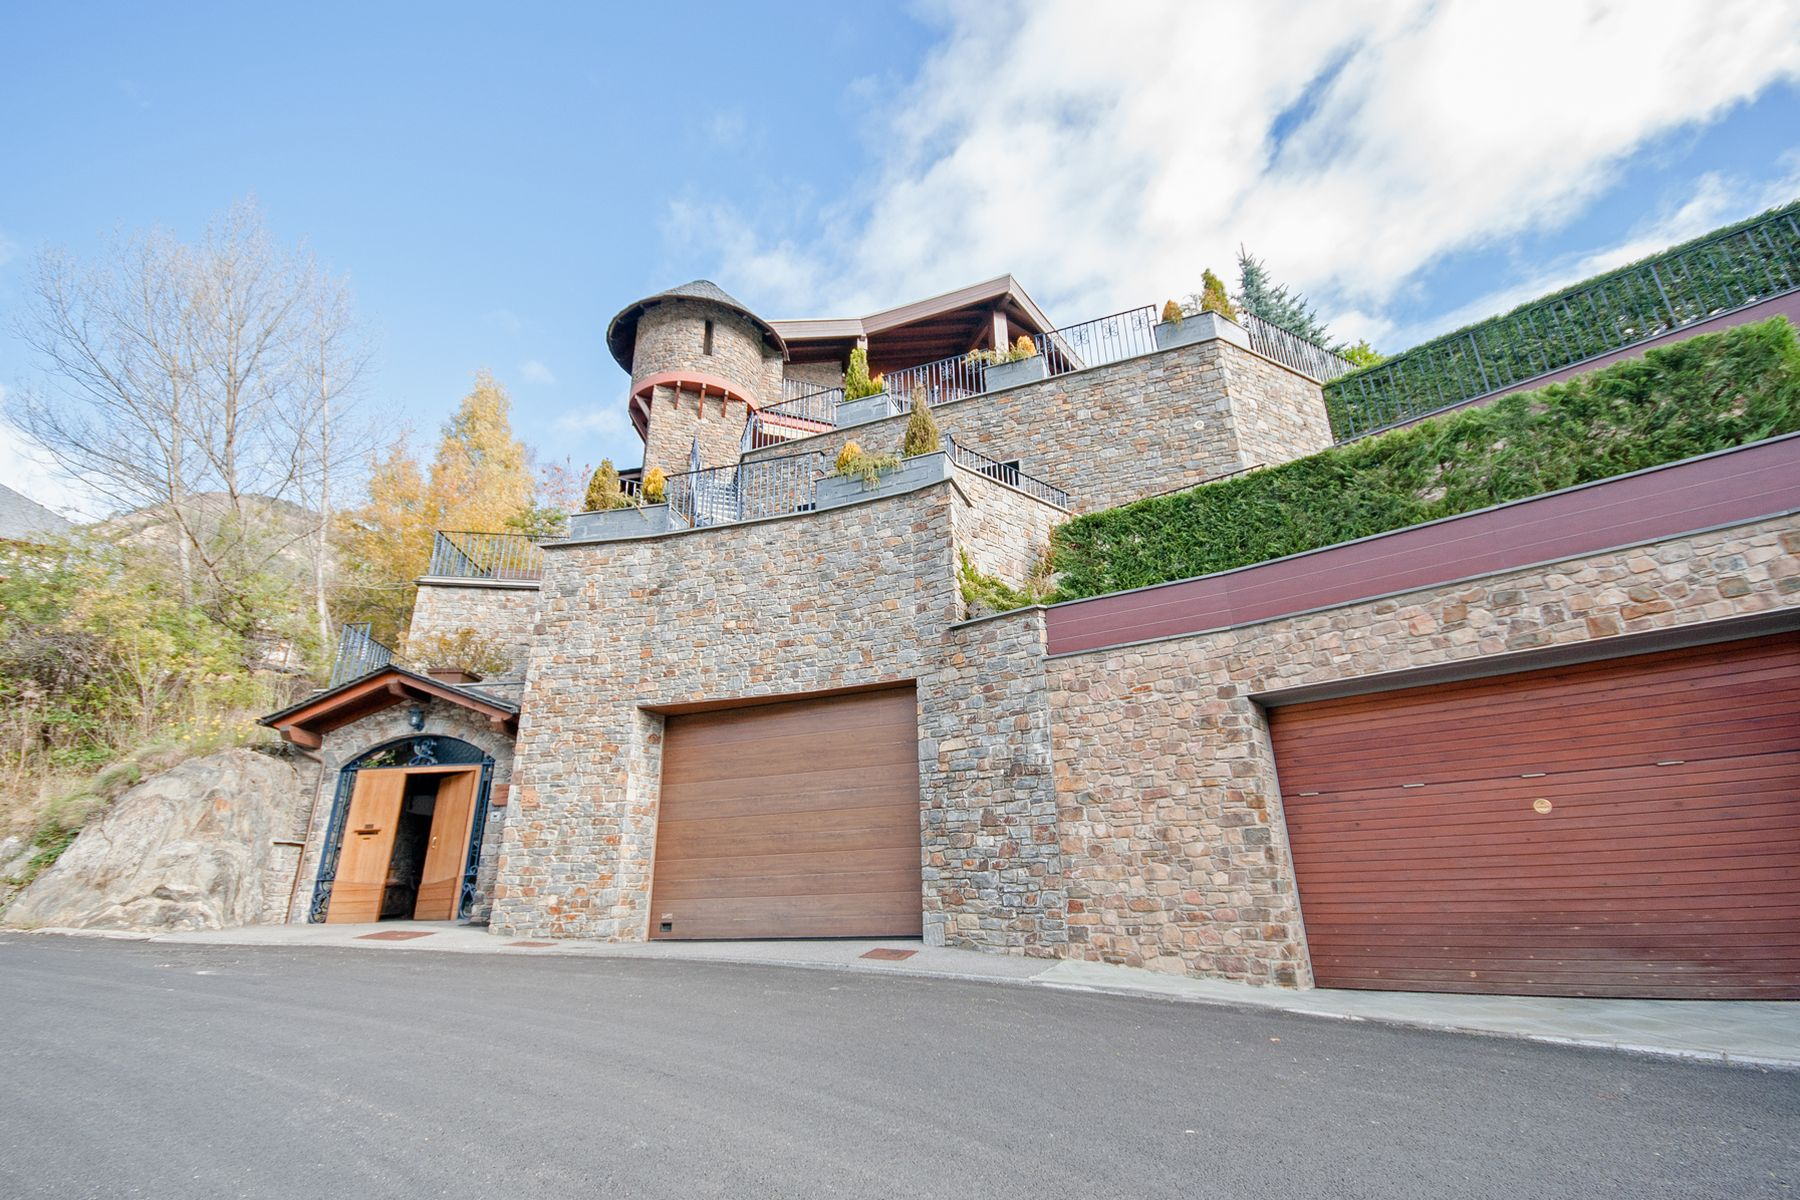 Single Family Home for Sale at Chalet-Tower for sale in La Massana La Massana, La Massana, AD400 Andorra